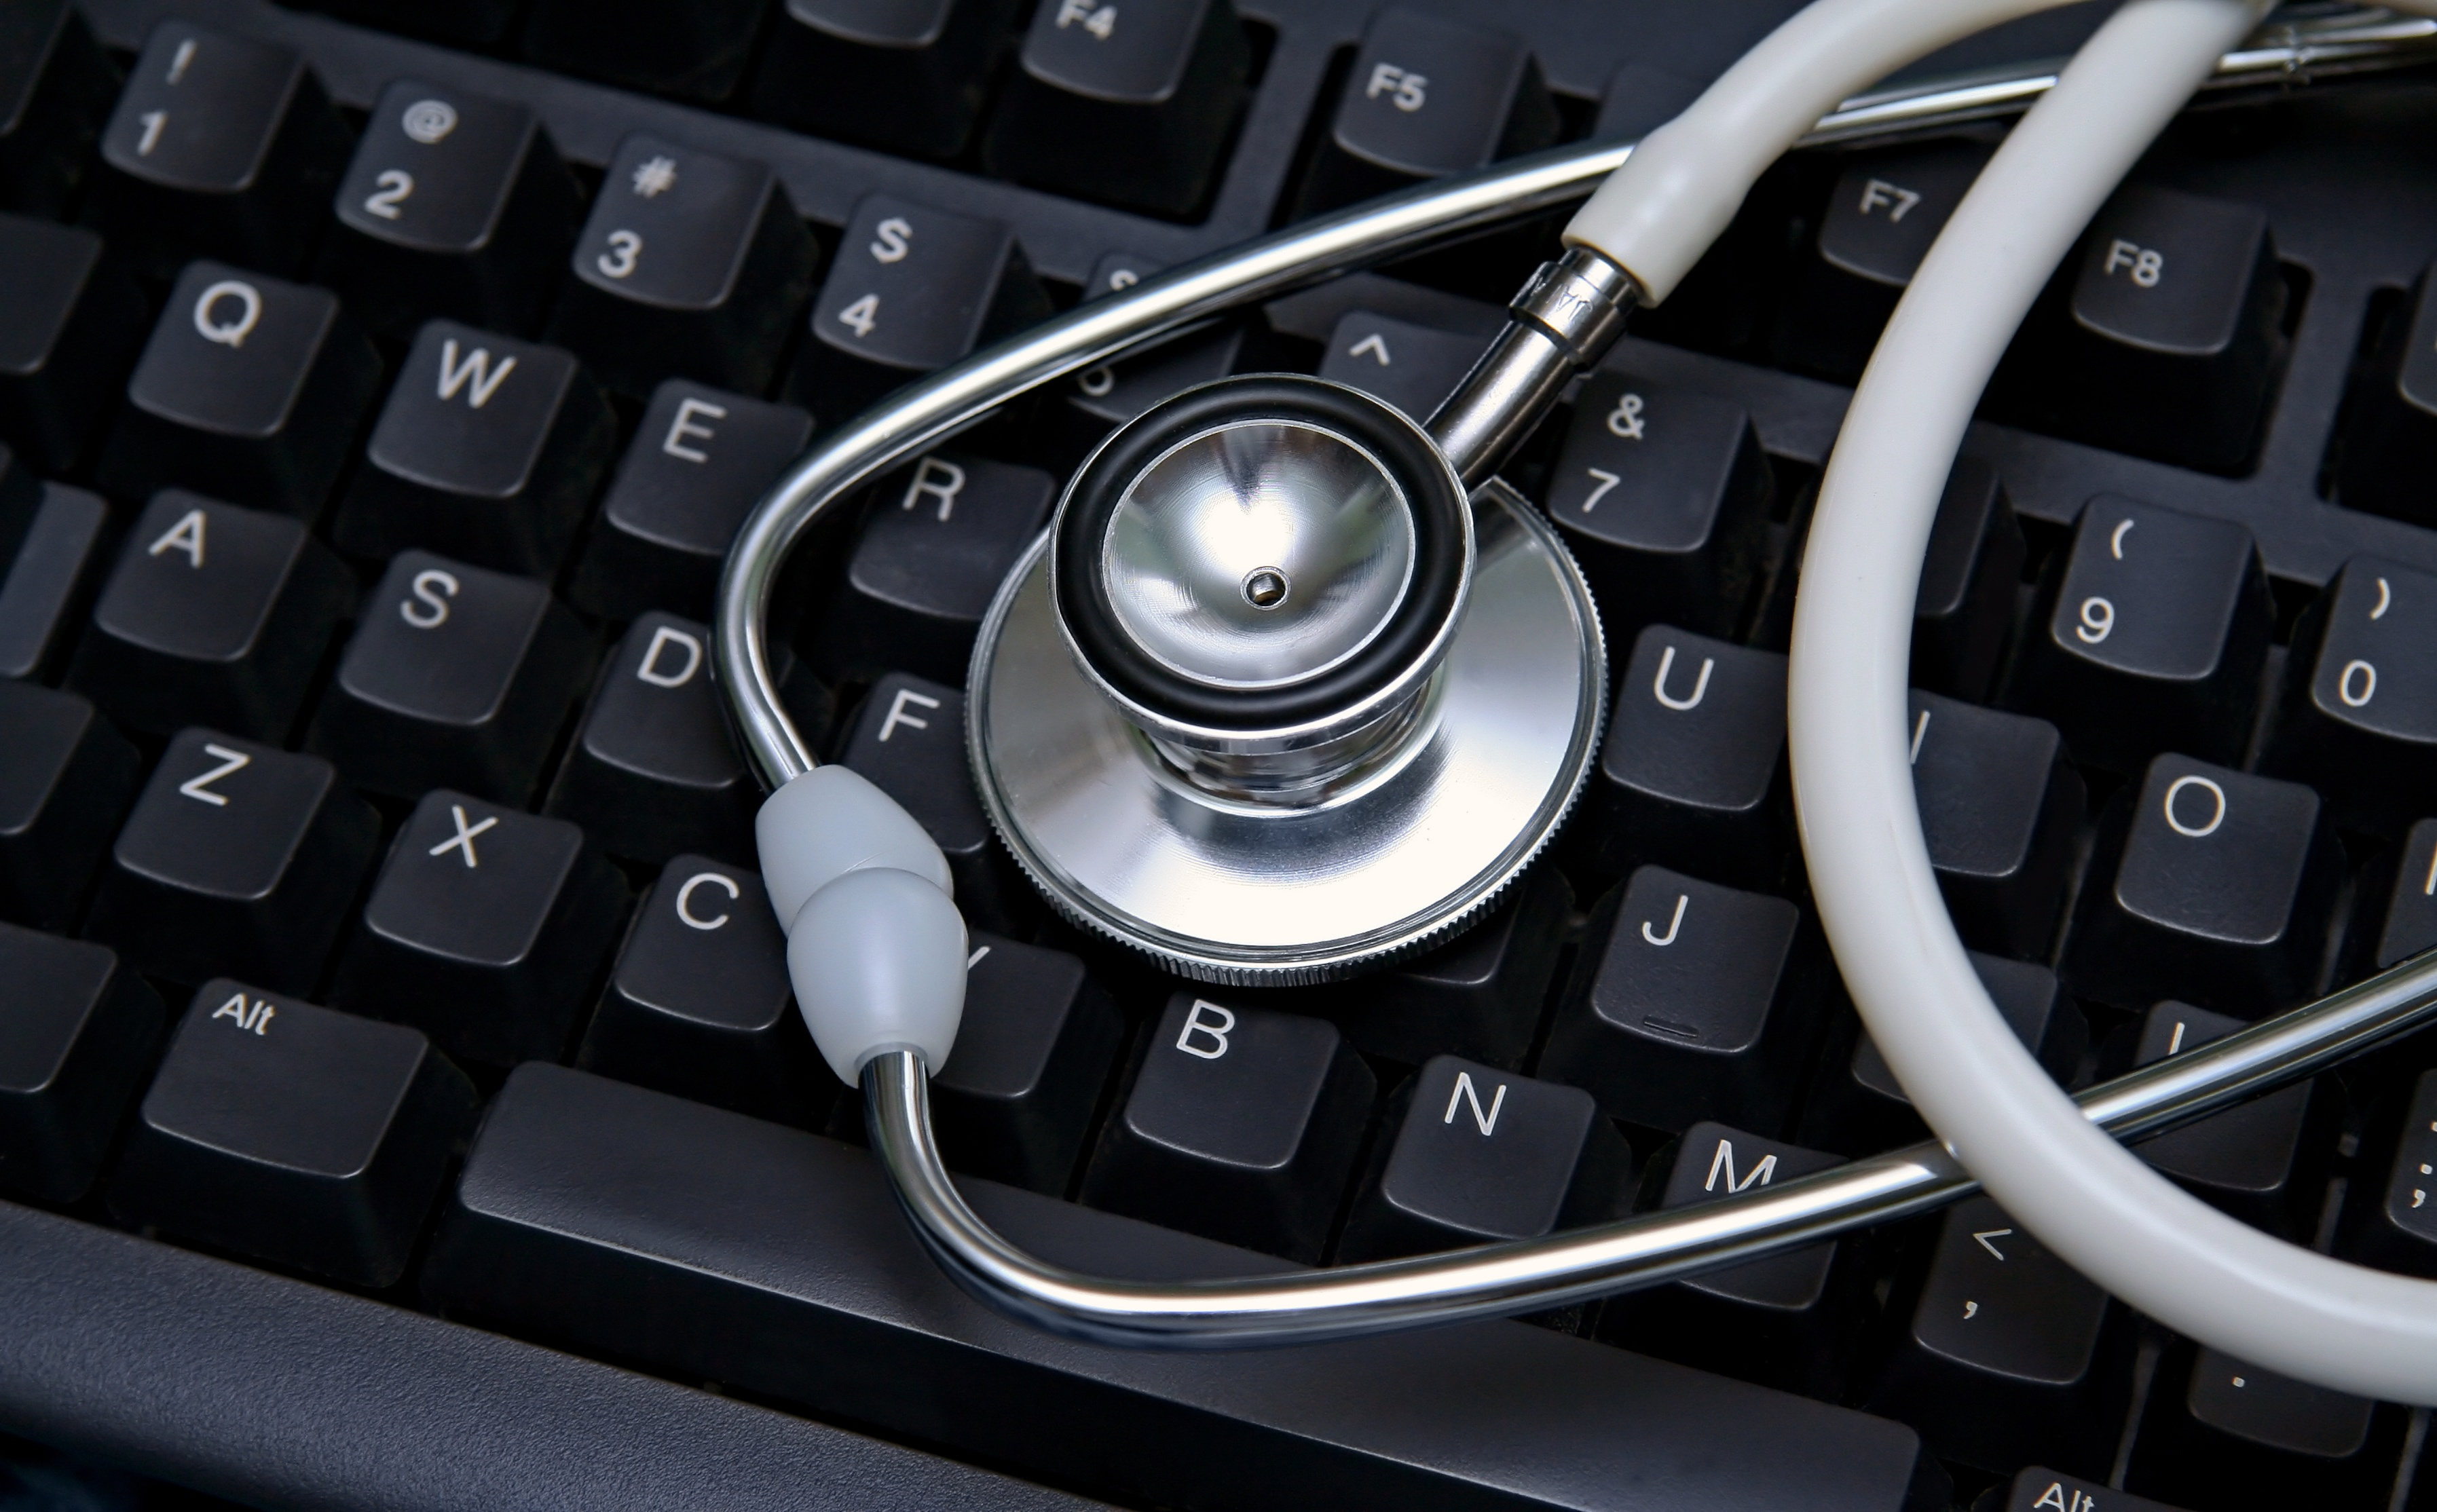 Stethoscope-on-Keyboard.jpg